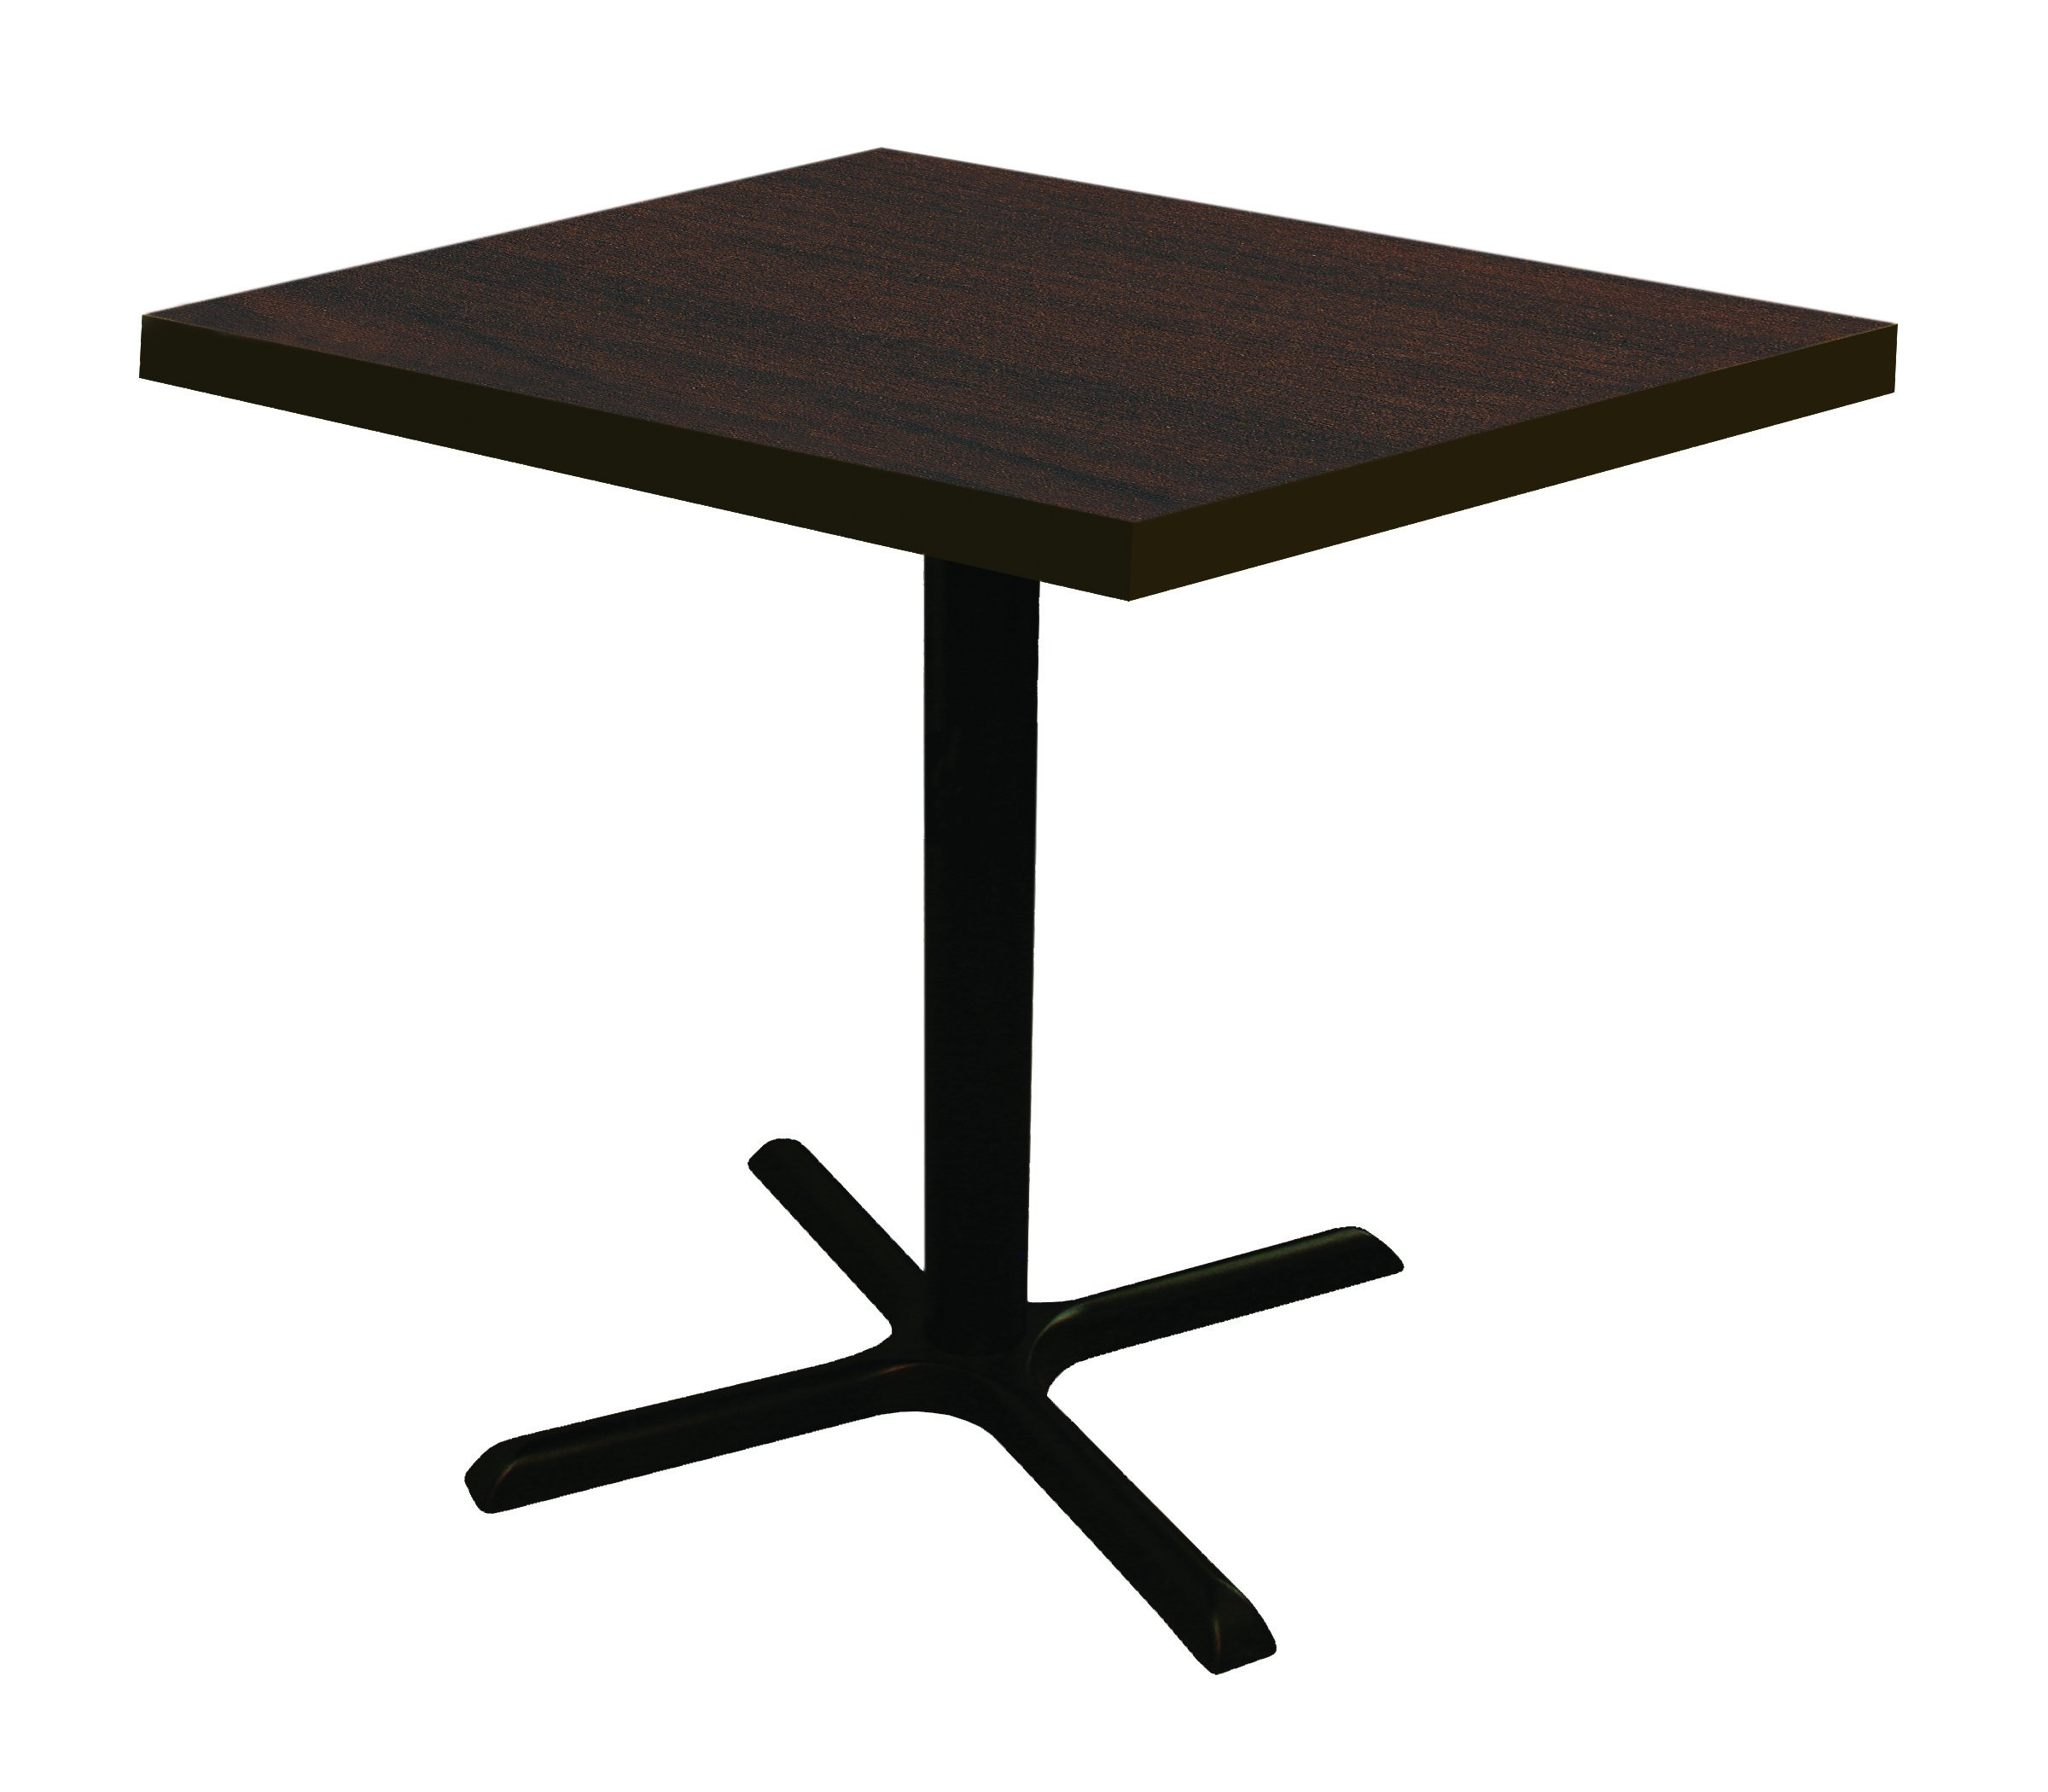 Square Conference, Break Room, Pub Height Table 30''D x 30''W x 42''H - Columbia Walnut Laminate/ Black Finish